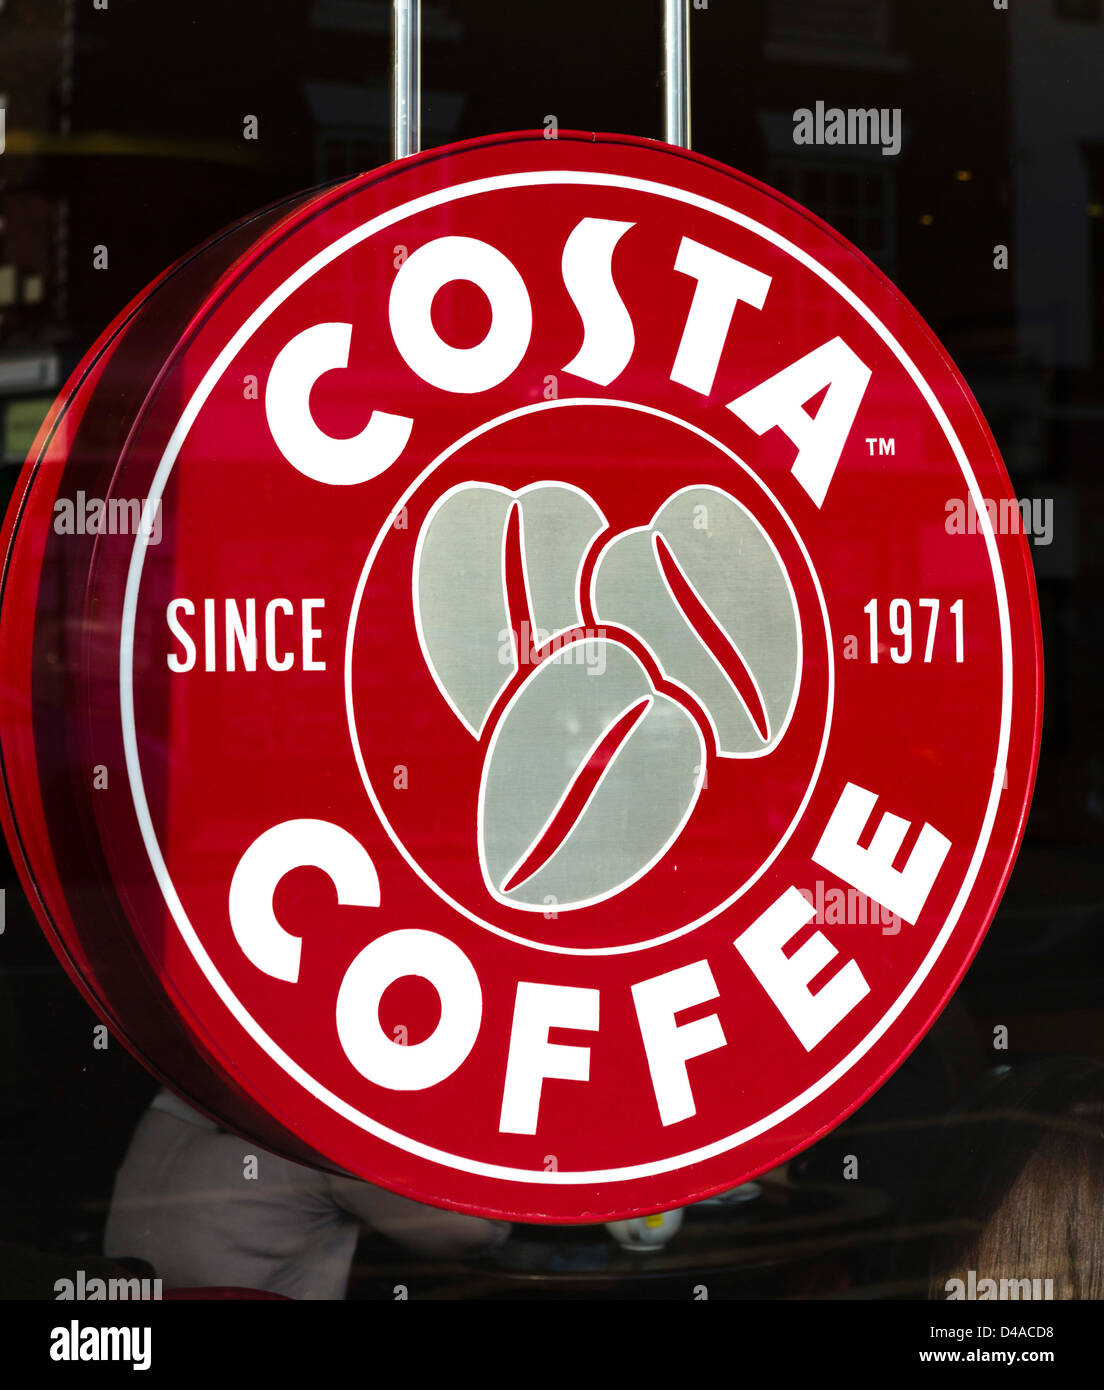 Costa coffee shop, REGNO UNITO Immagini Stock